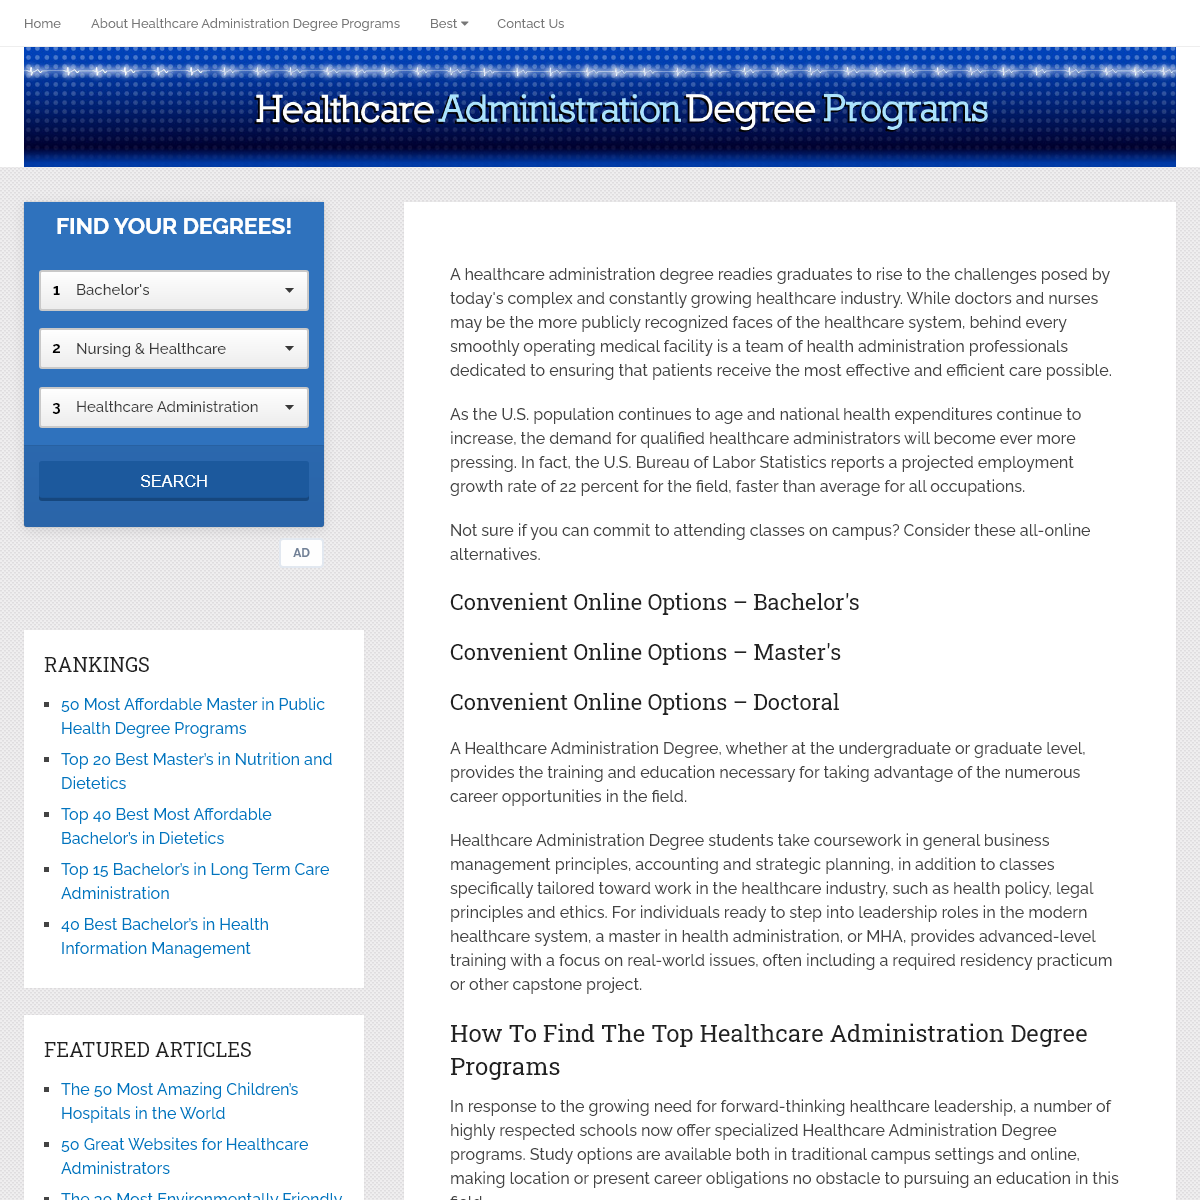 - Healthcare Administration Degree Programs